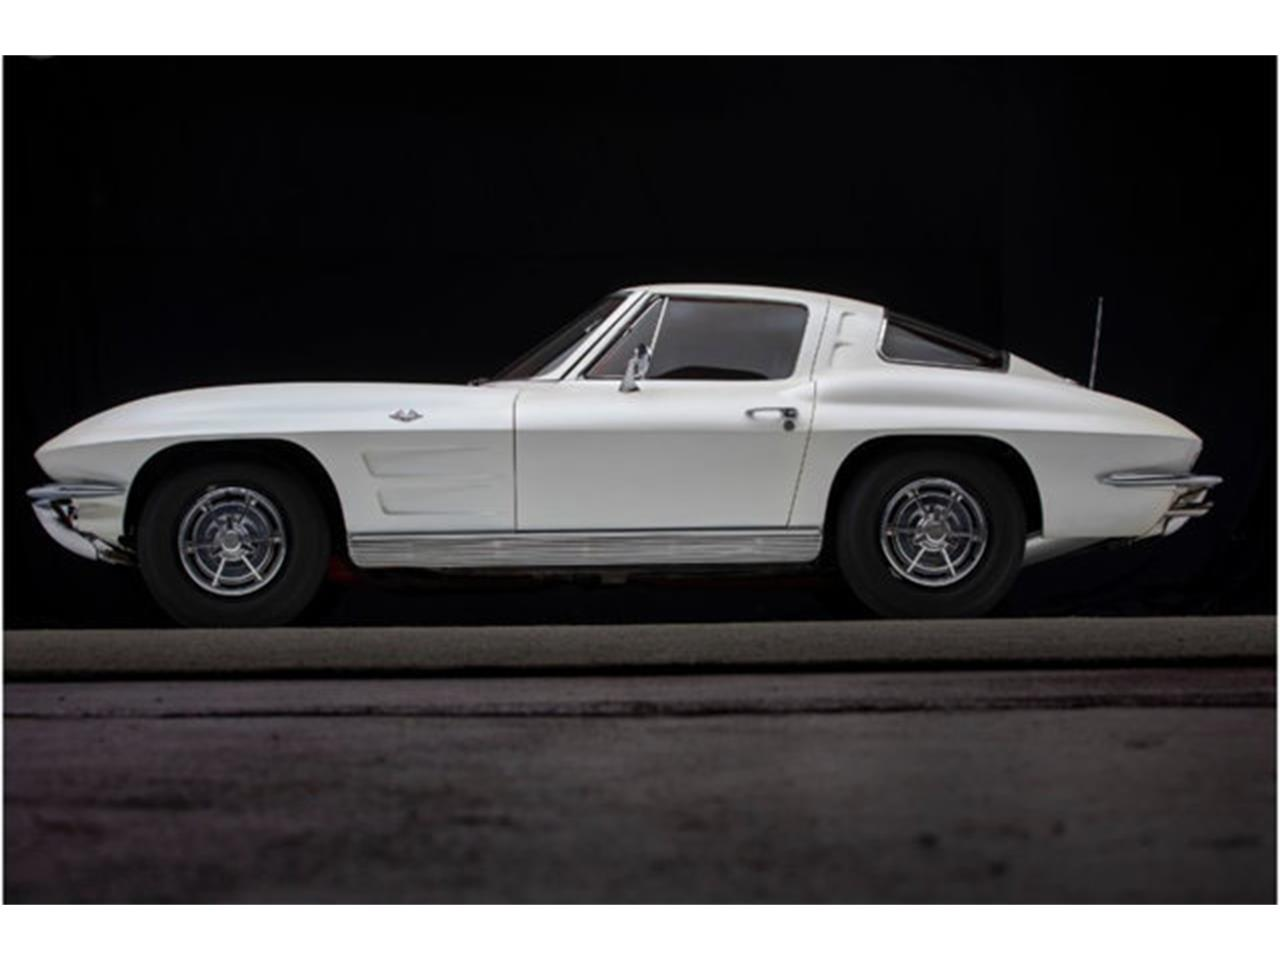 Large Picture of 1963 Chevrolet Corvette located in New York - $139,999.00 - QOXV